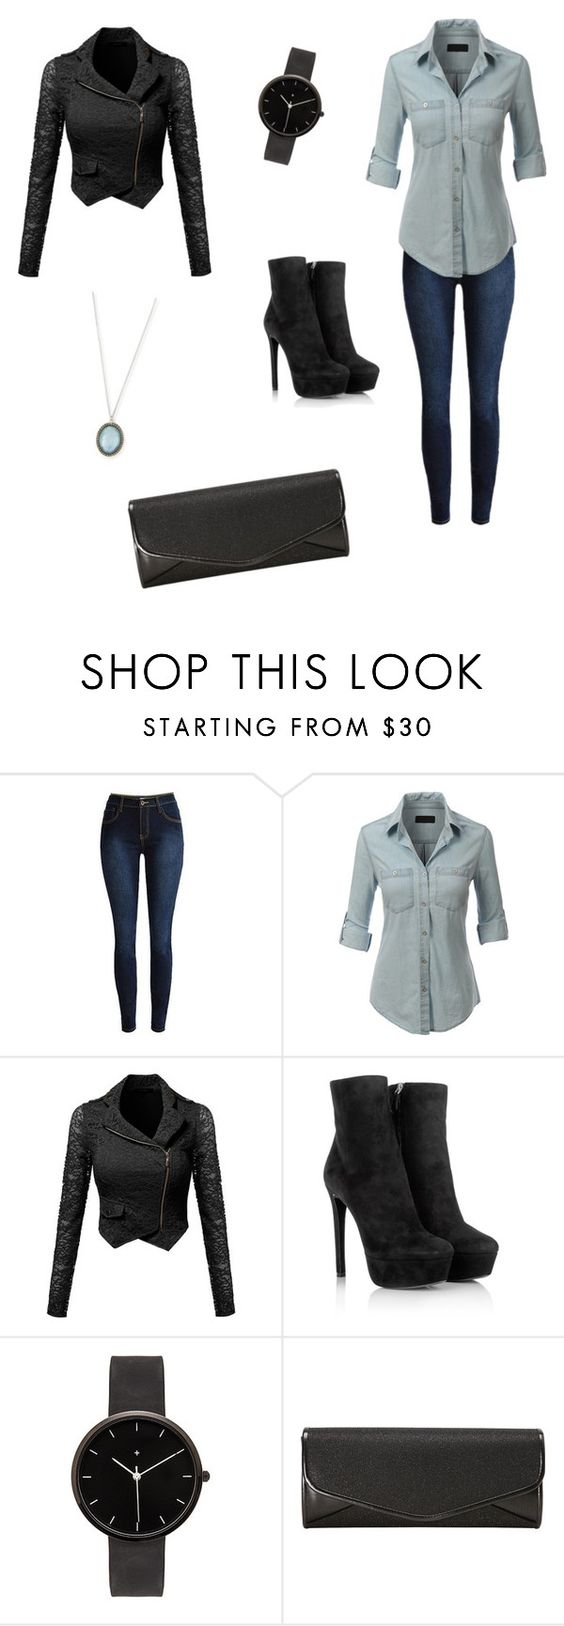 """""""KATE BECKETT INSPIRED OUTFIT"""" by caitzzz ❤ liked on Polyvore featuring LE3NO, Prada, I Love Ugly, J. Furmani, Armenta, women's clothing, women, female, woman and misses"""